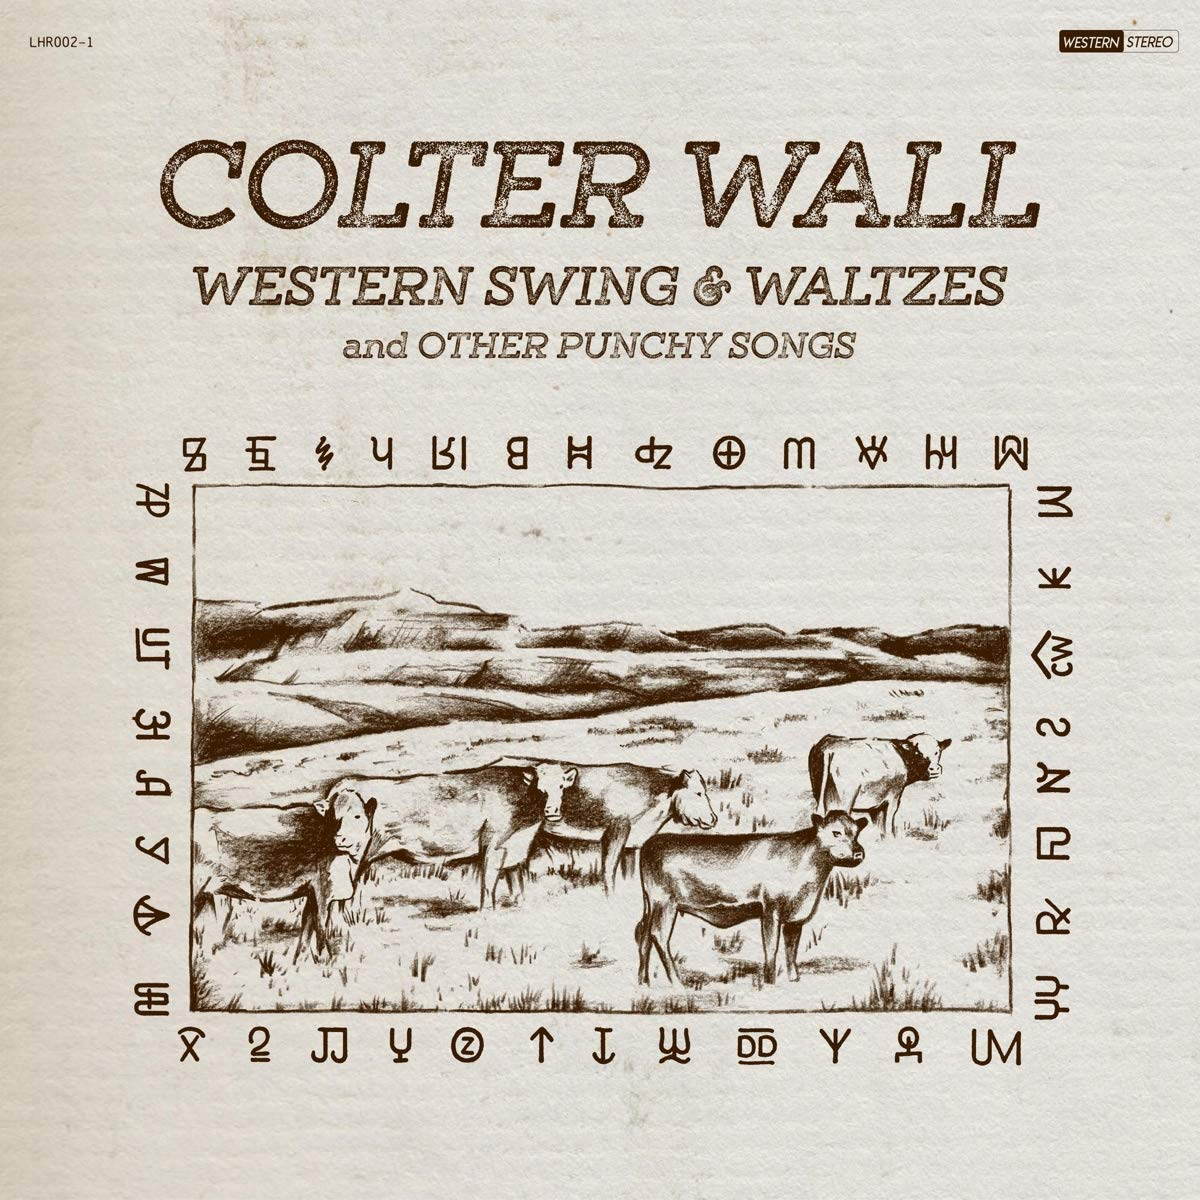 Colter Wall - Western Swing & Waltzes and Other Punchy Songs